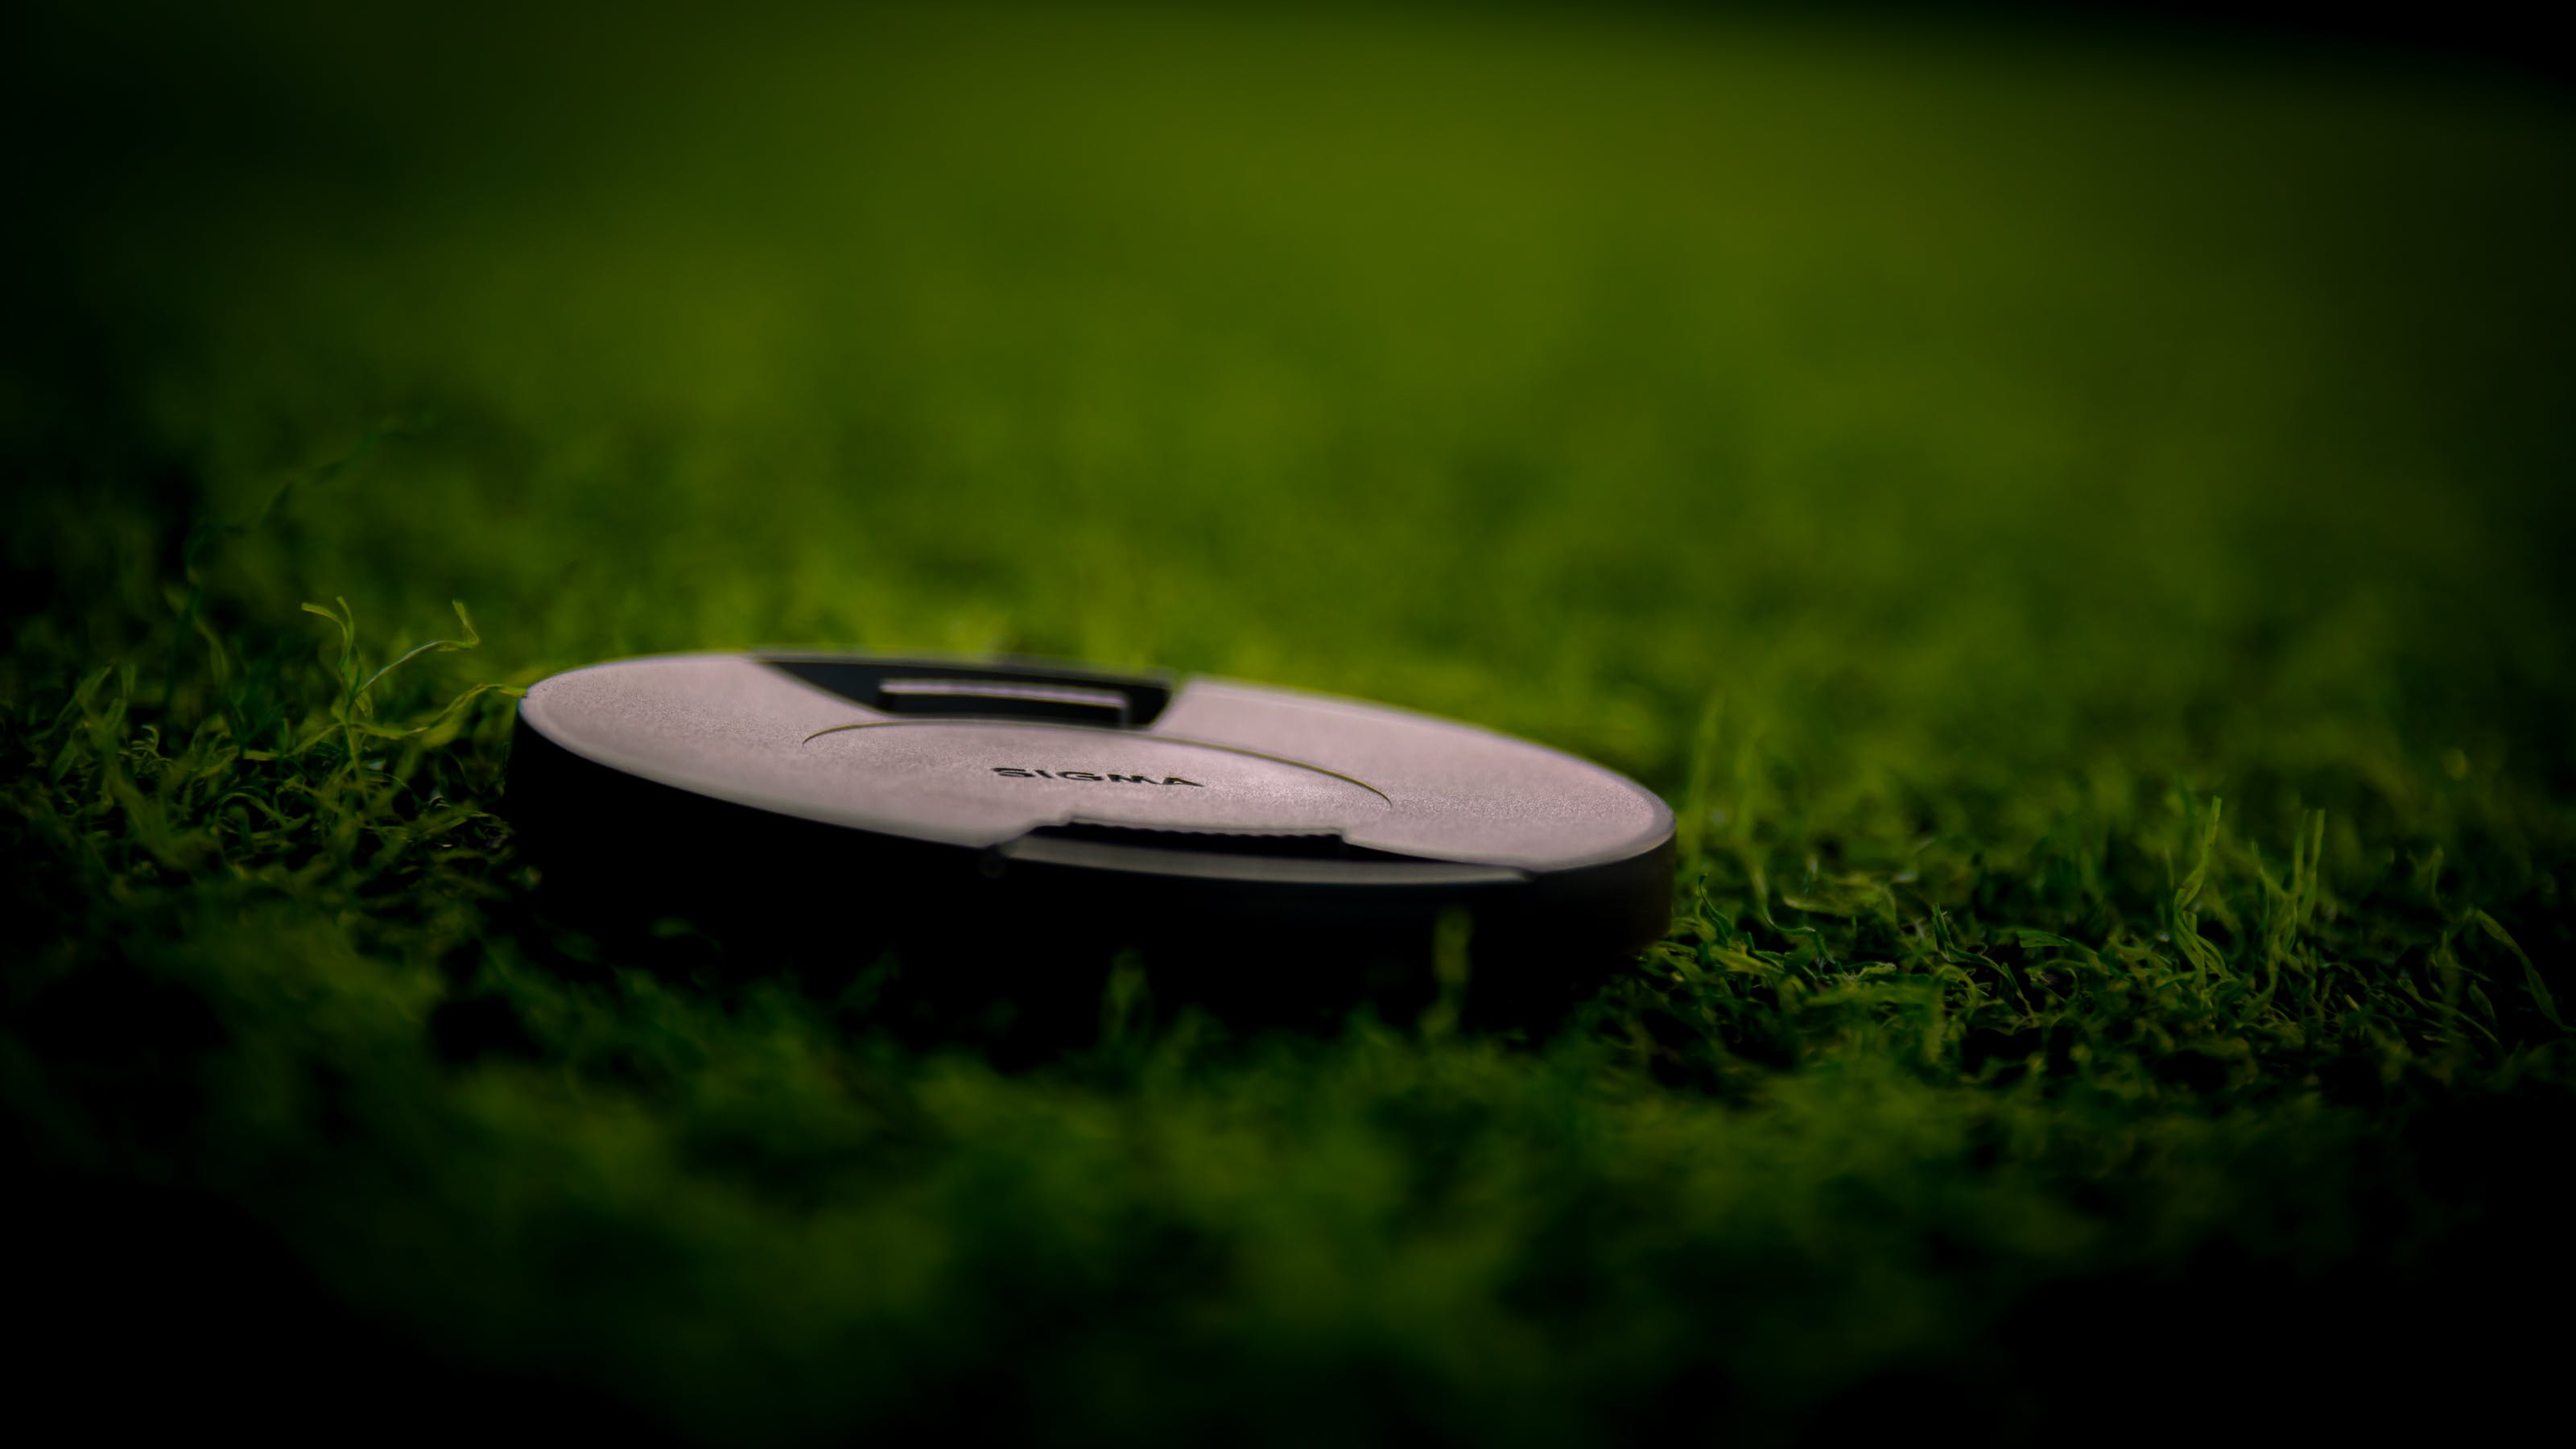 Black Camera Lens Cover on Green Grass